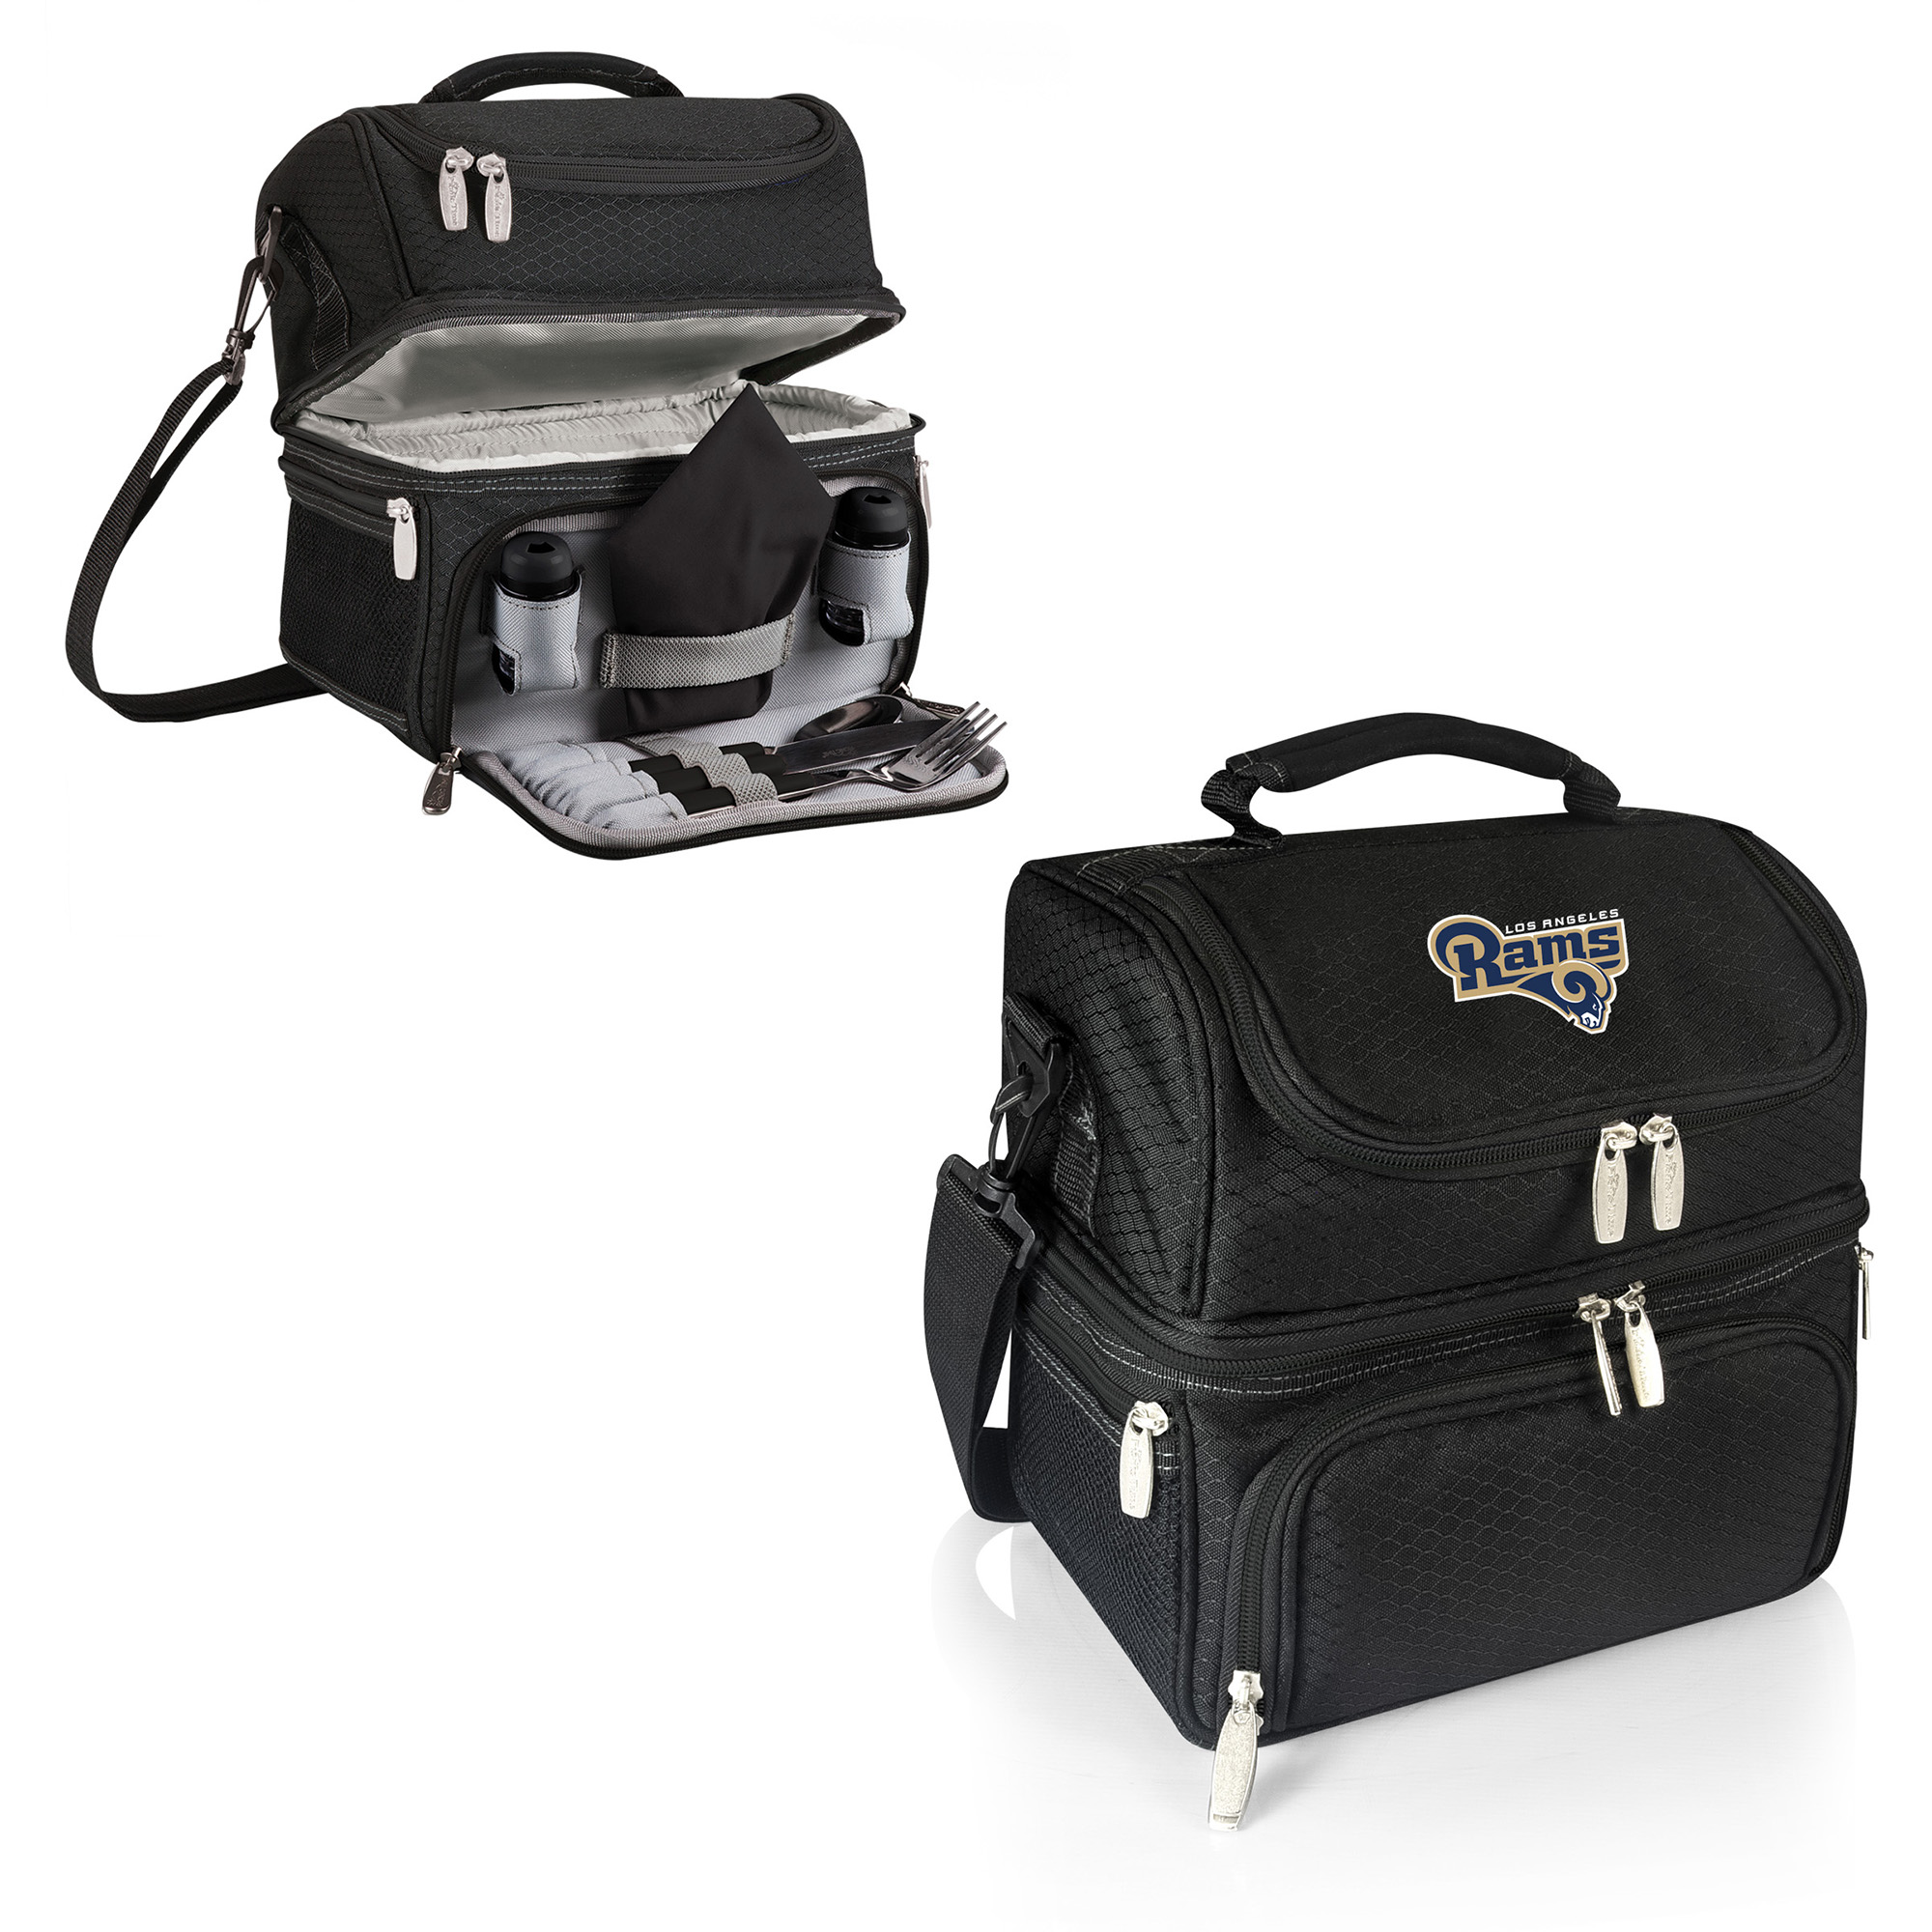 Los Angeles Rams Pranzo Lunch Tote - Black - No Size